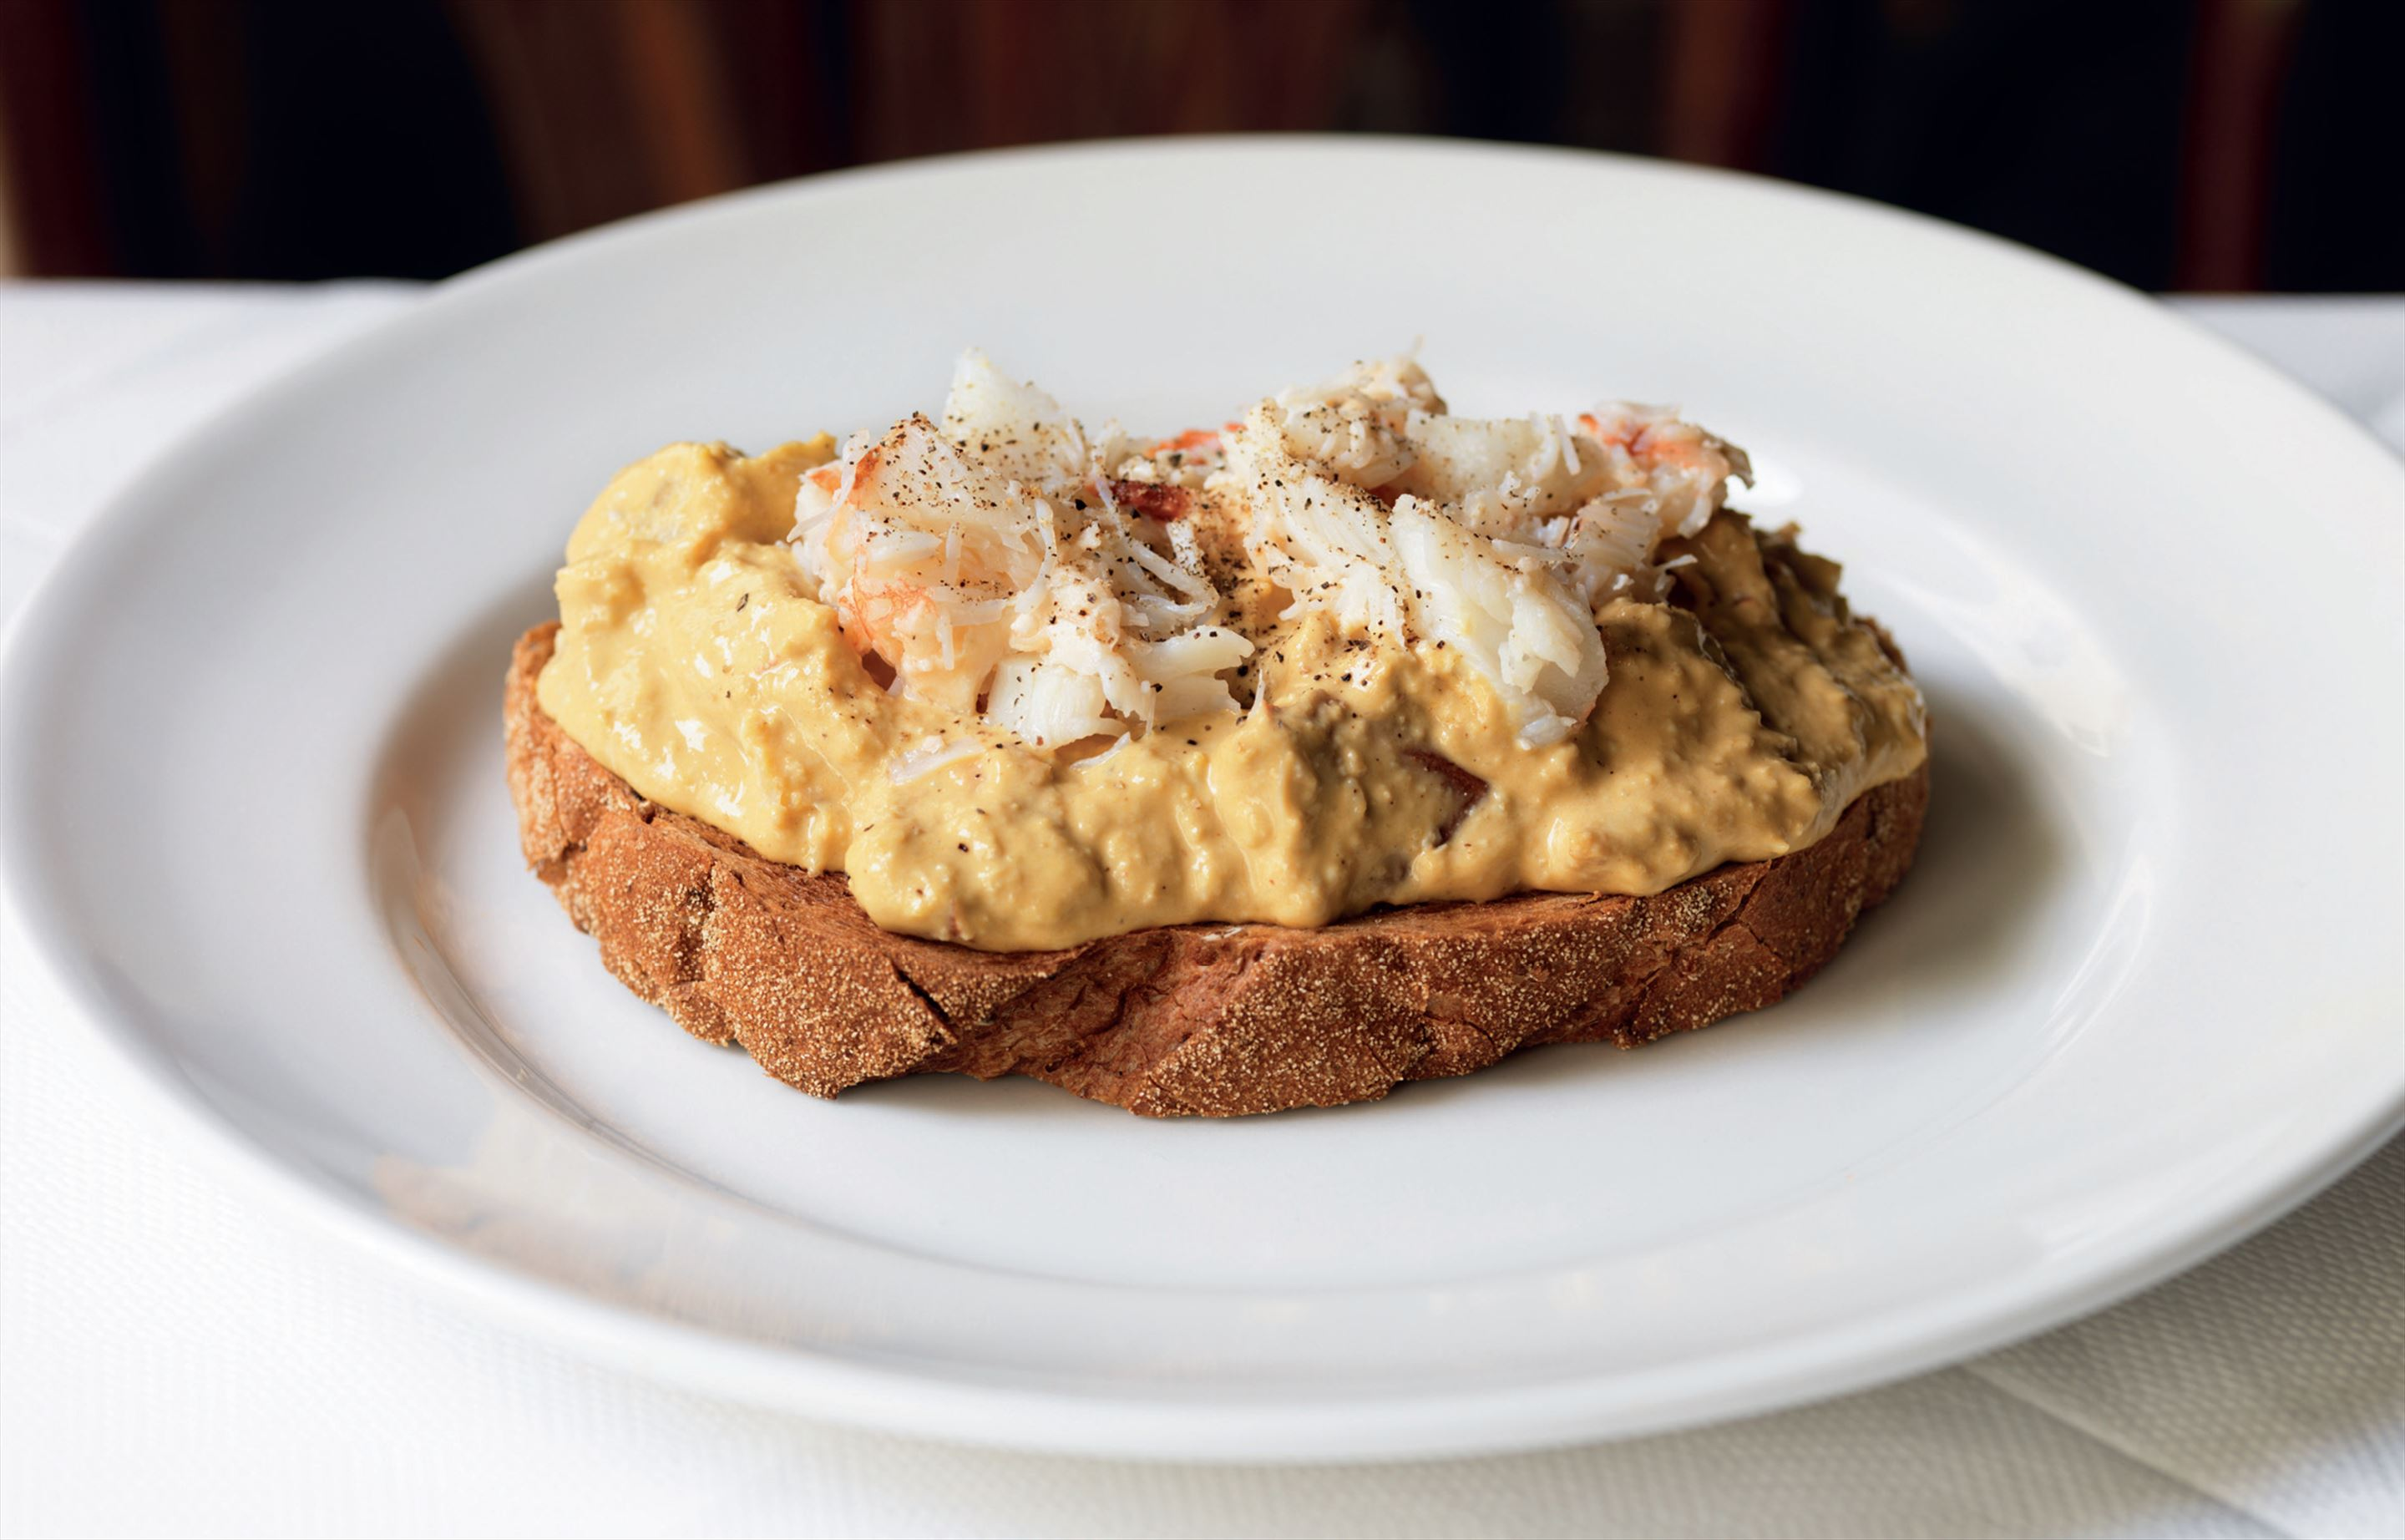 Dorset crab on toast